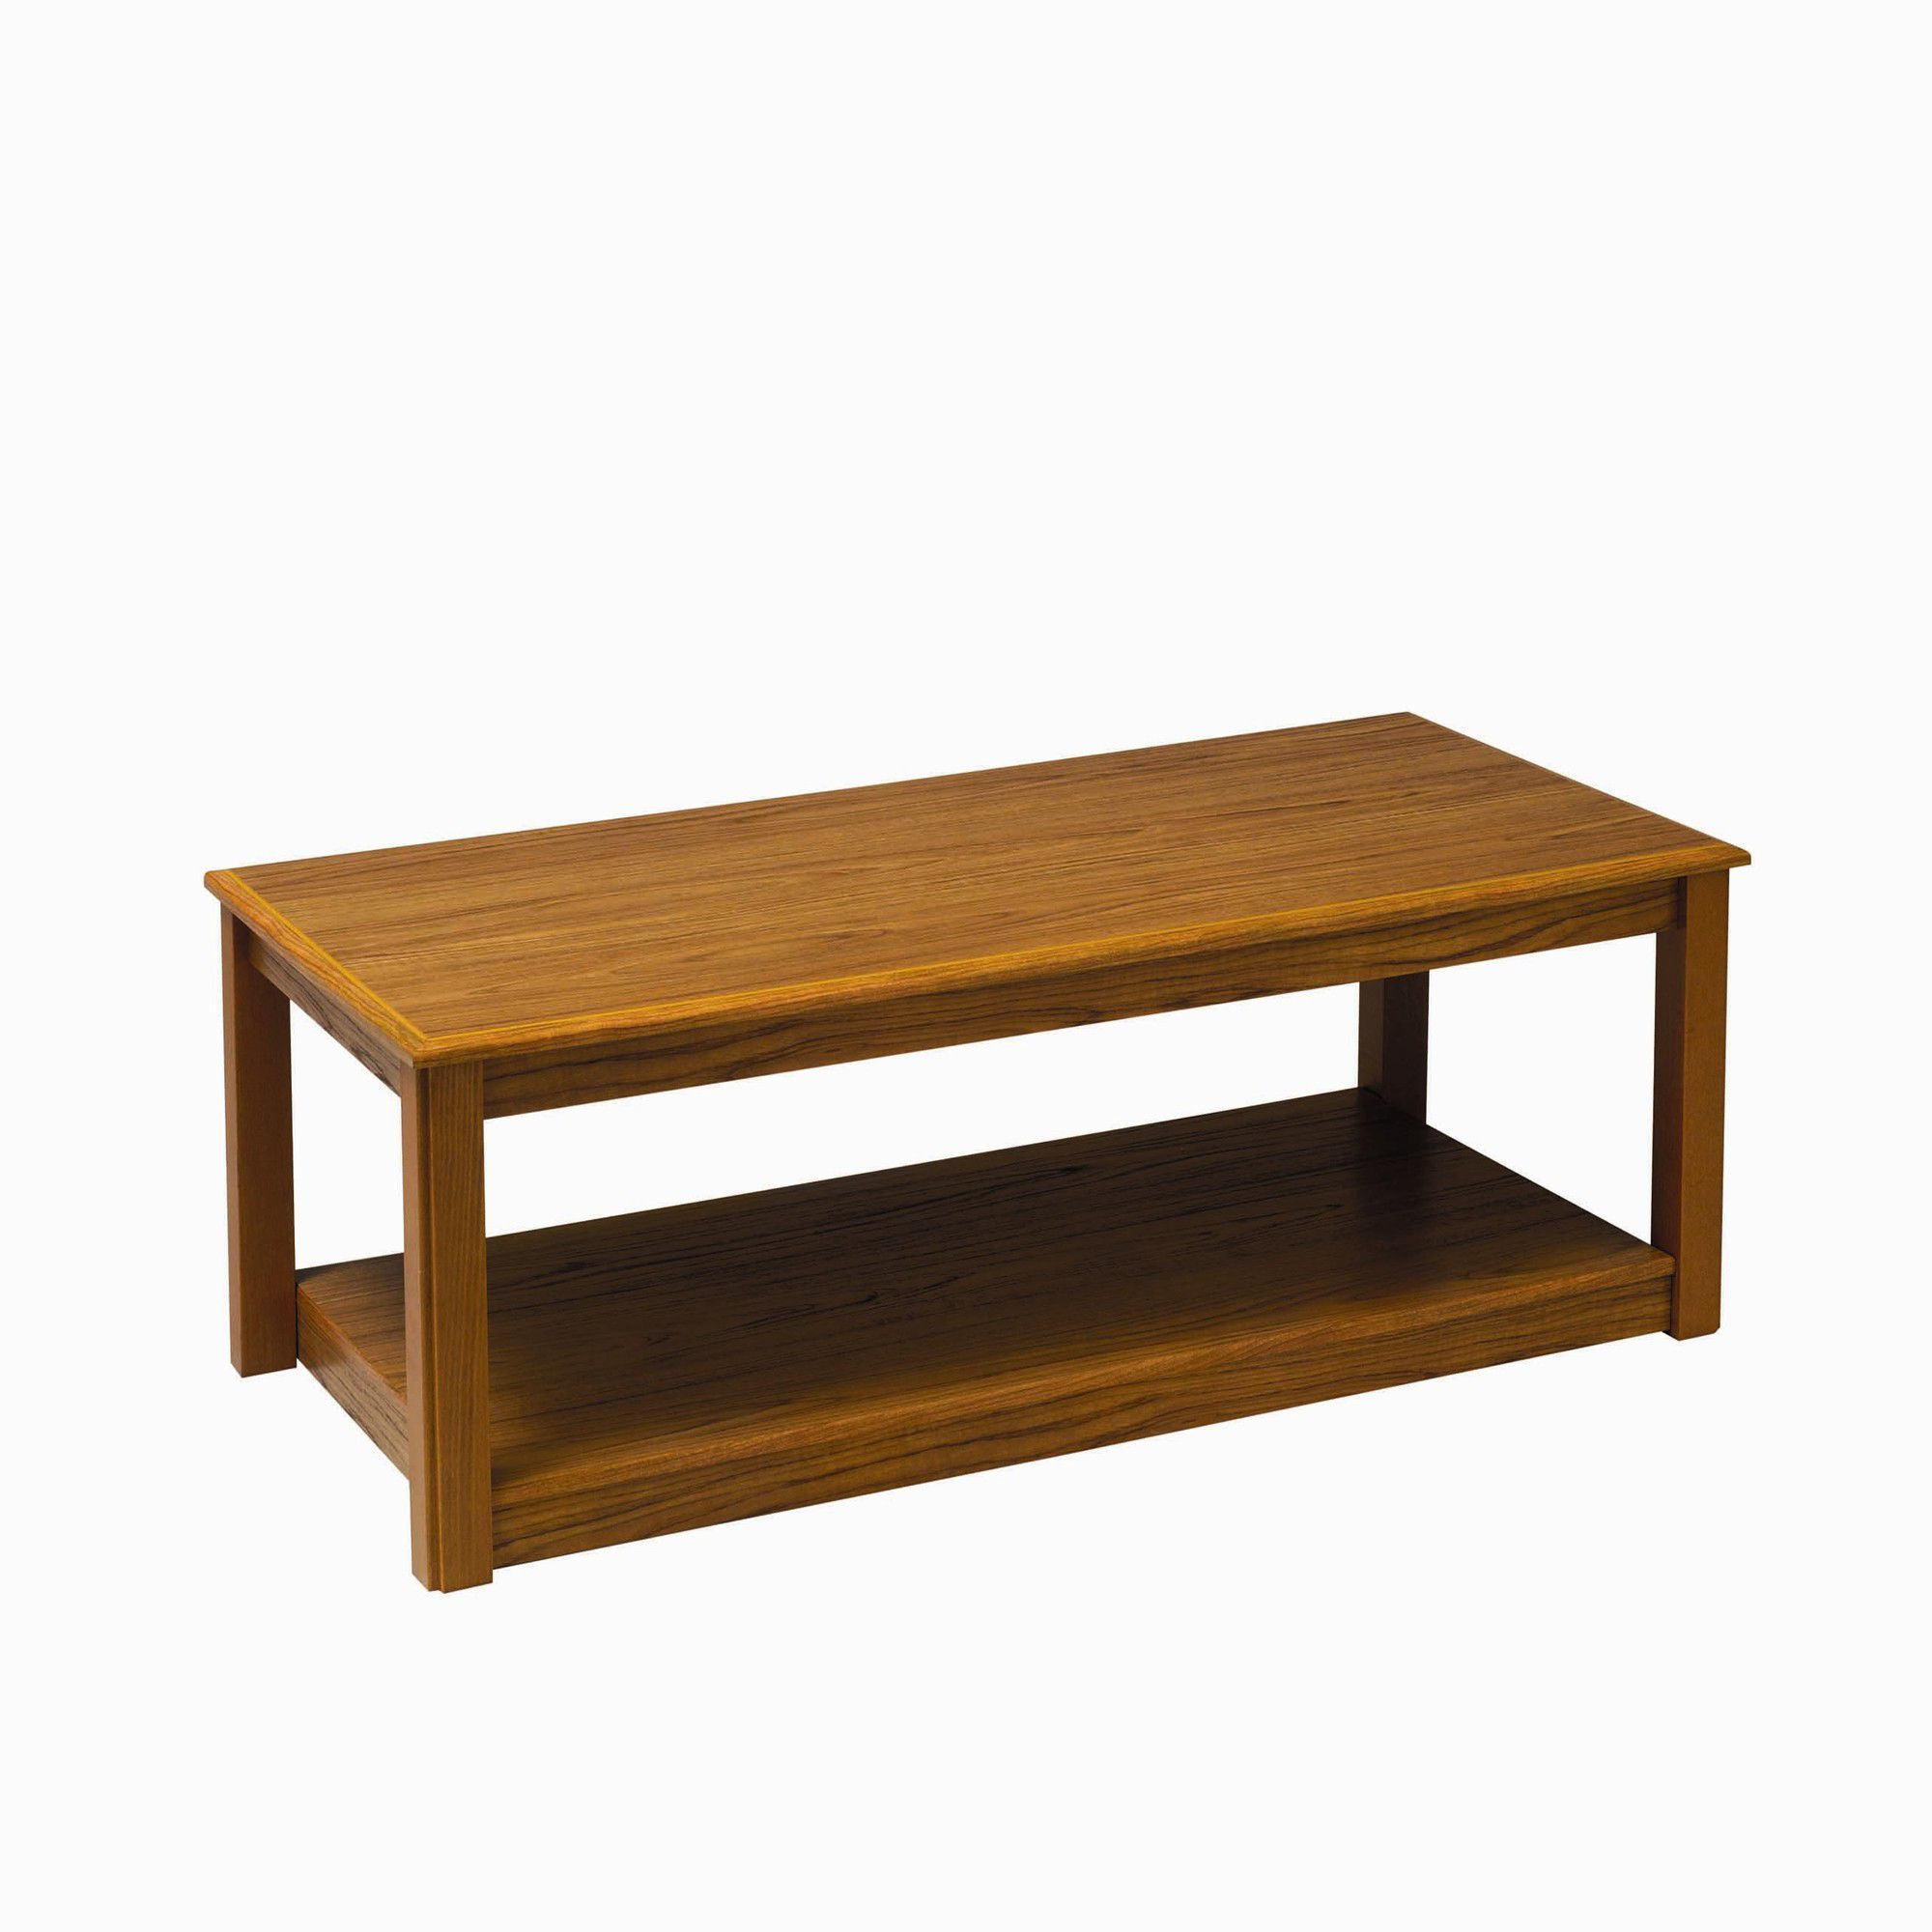 Home And Garden Furniture Caxton Lincoln Gateleg Table In Cherry 32 132cm Special Offers